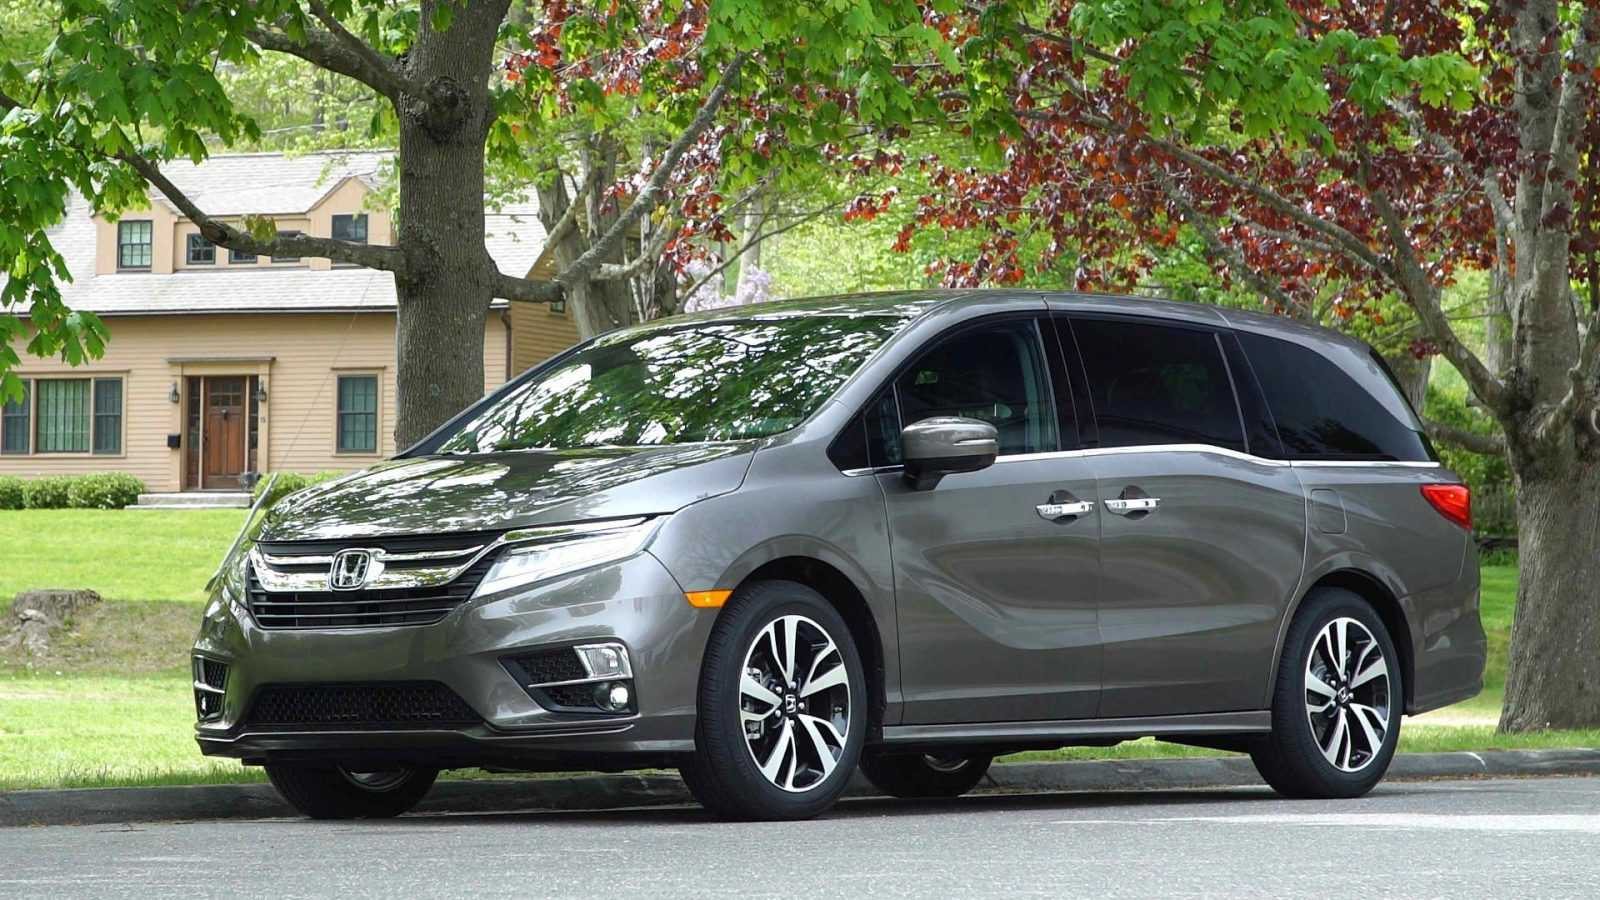 buying a used minivan - how to do it?